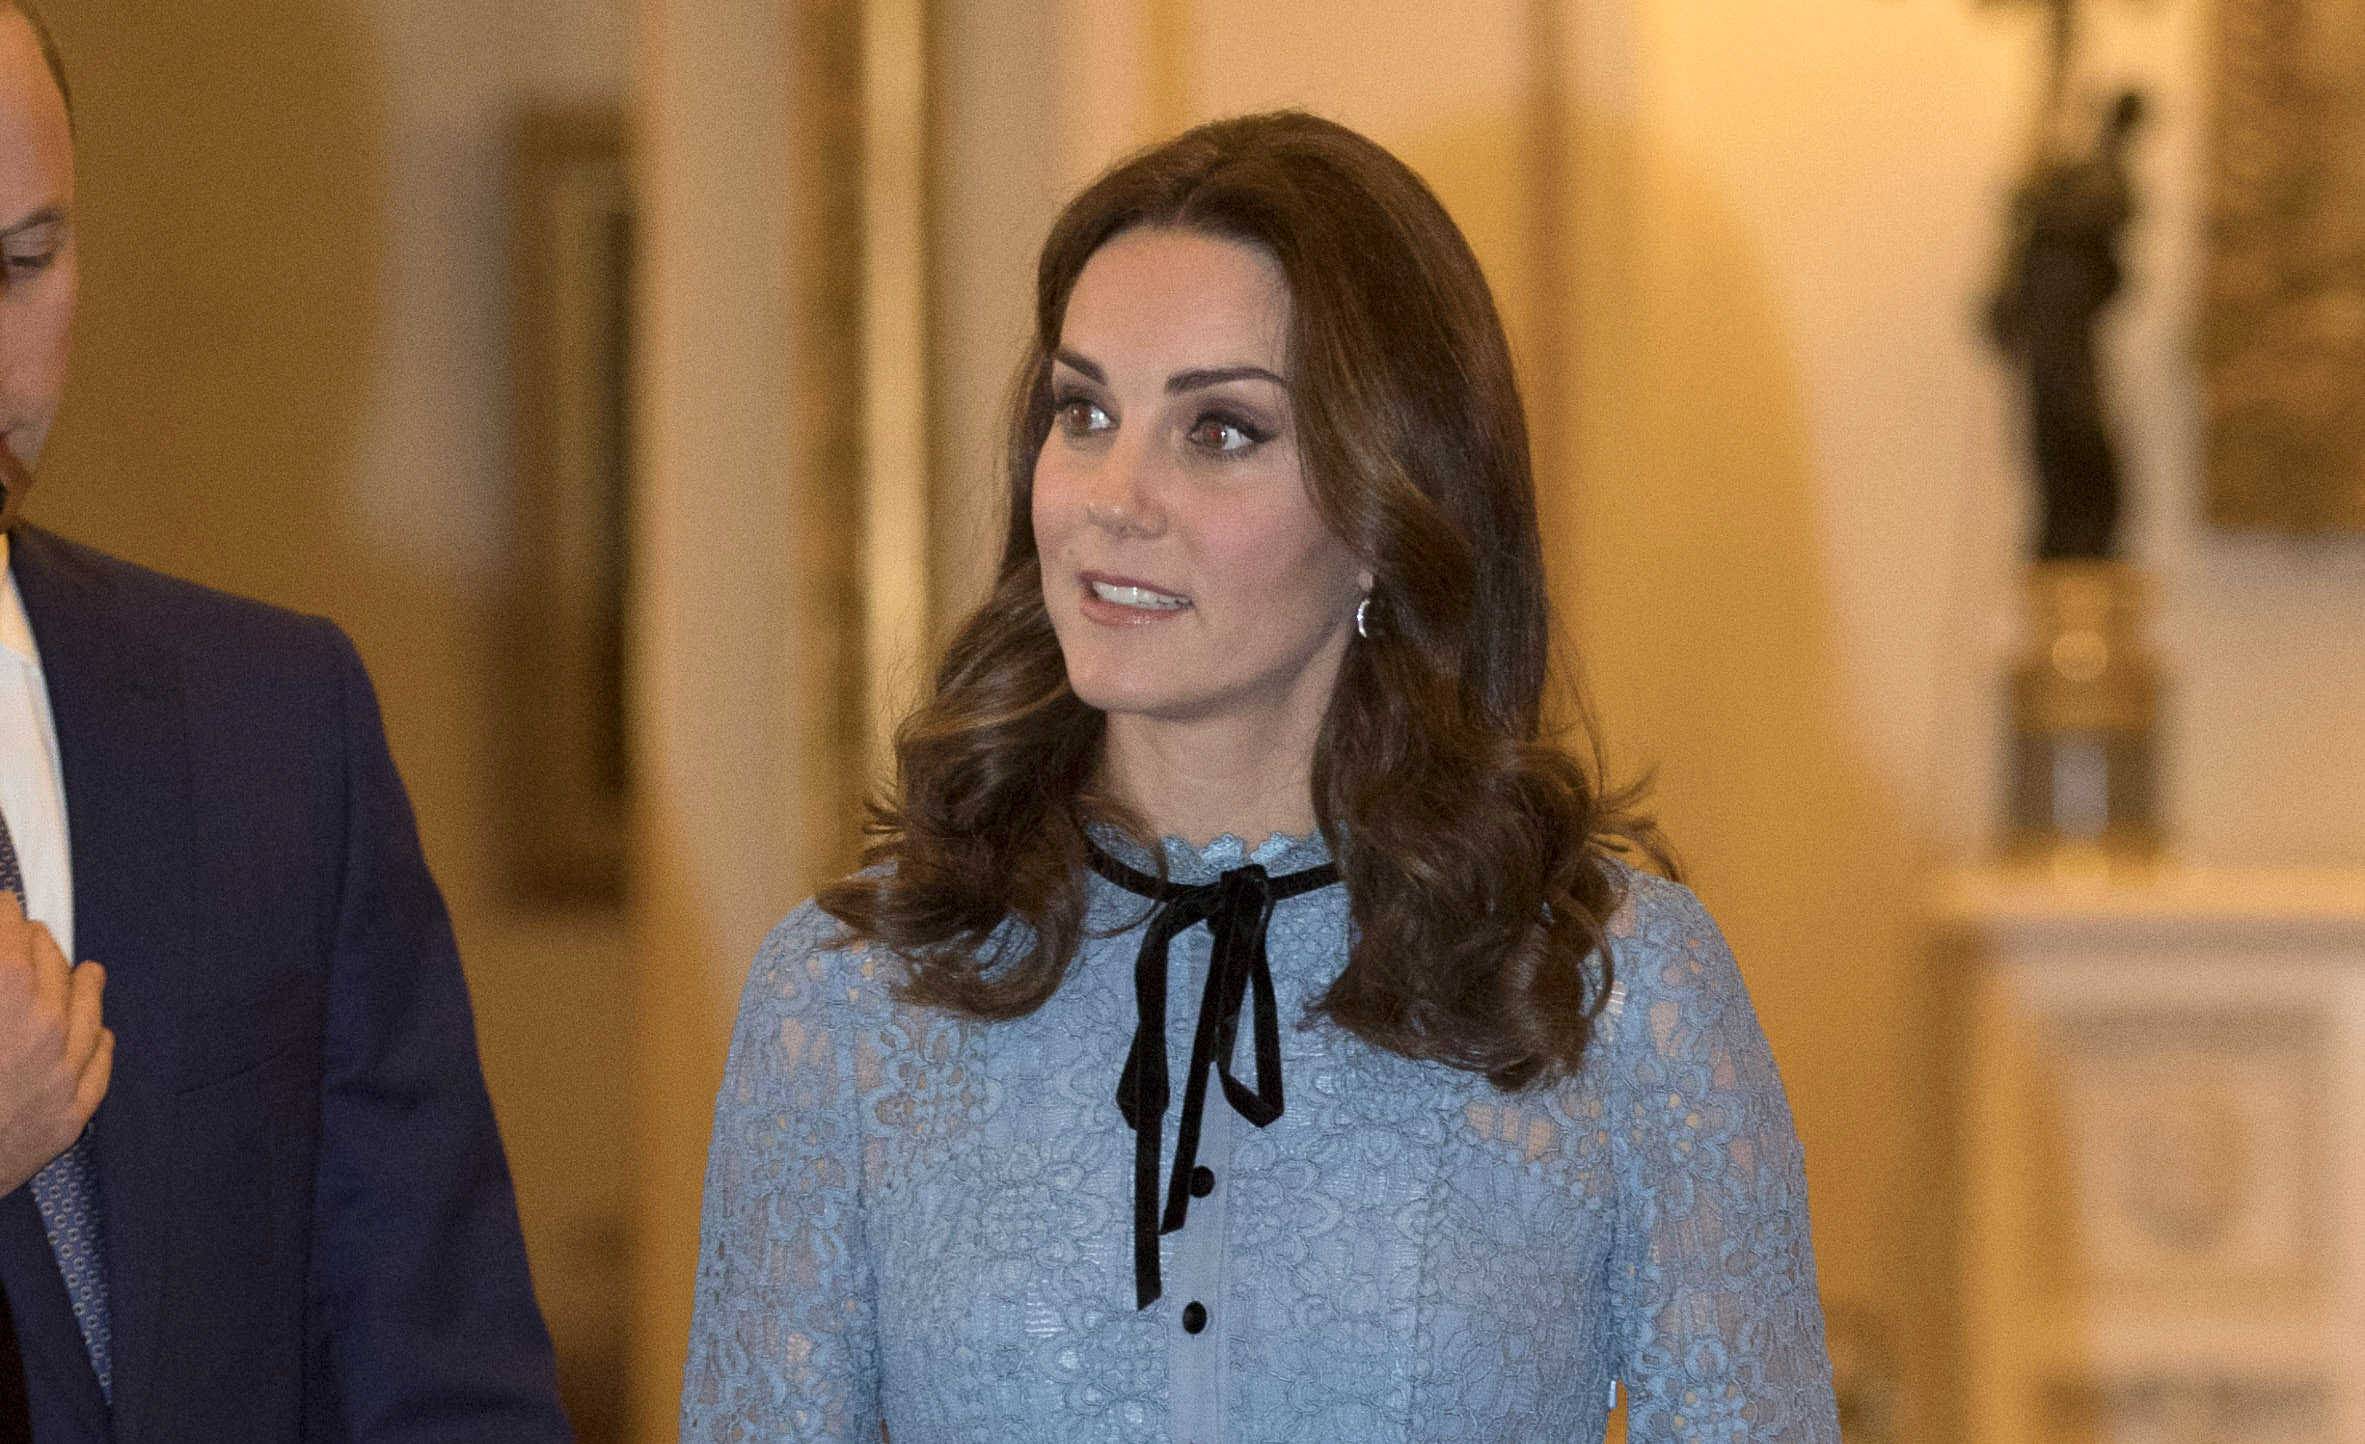 Kate Middleton's ice-blue lace dress is one of her best maternity pieces